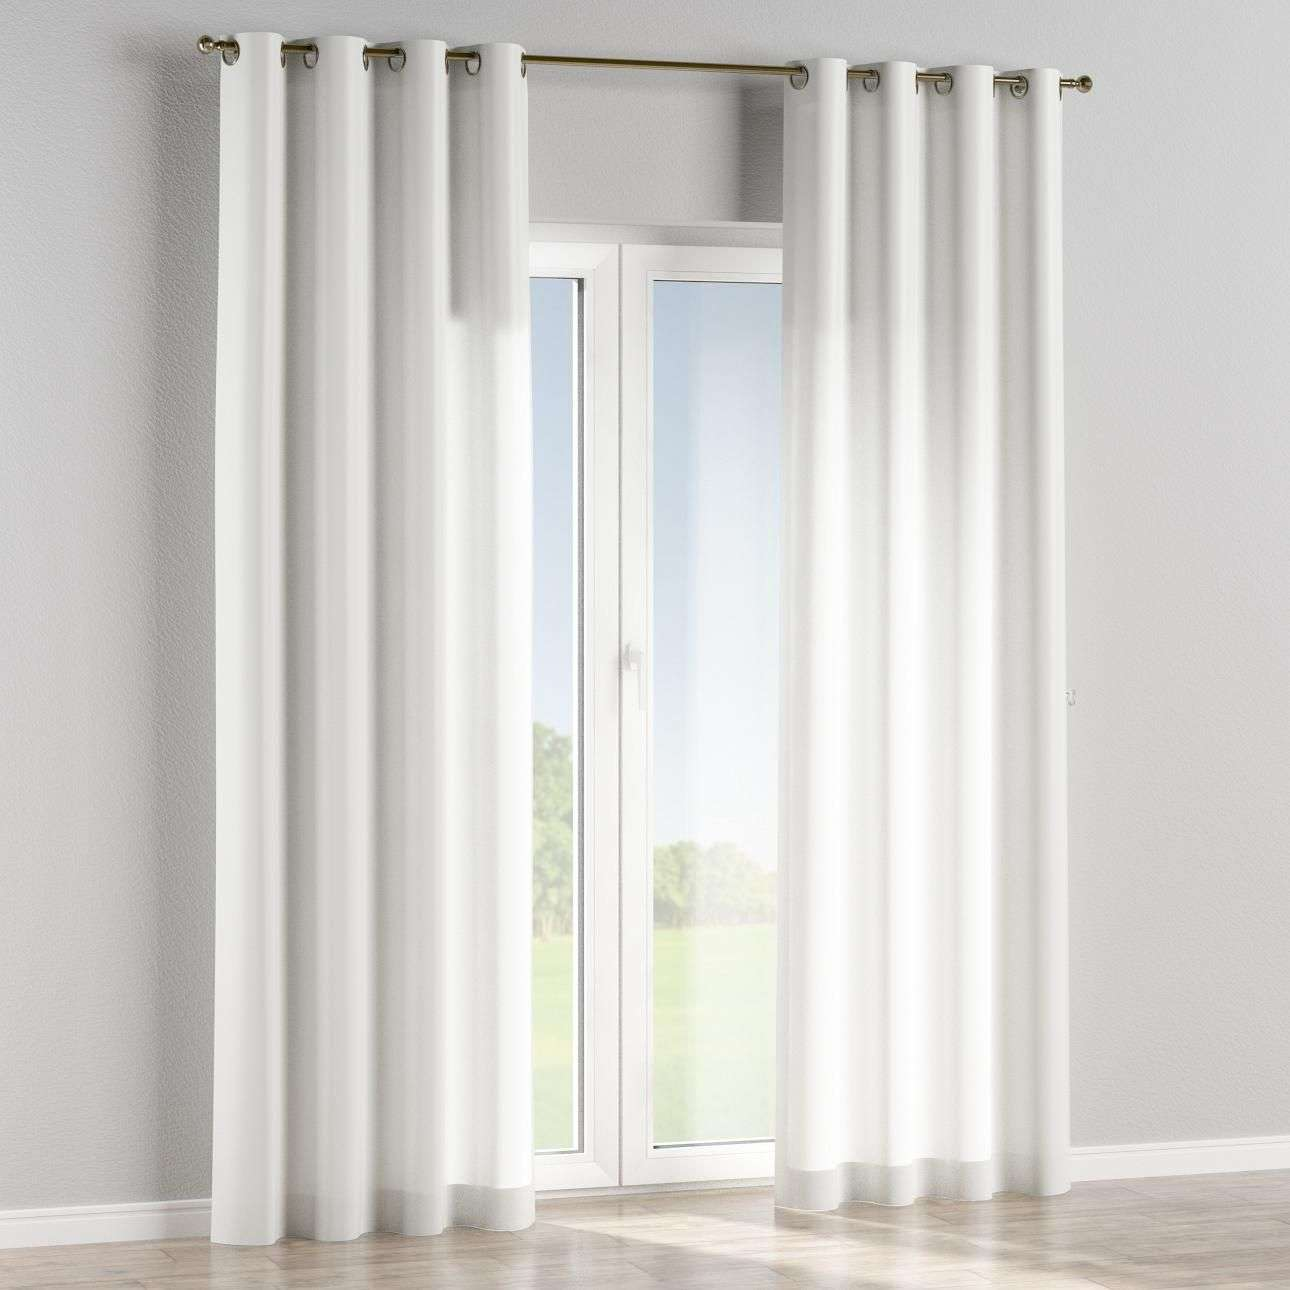 Eyelet lined curtains in collection Mirella, fabric: 143-06